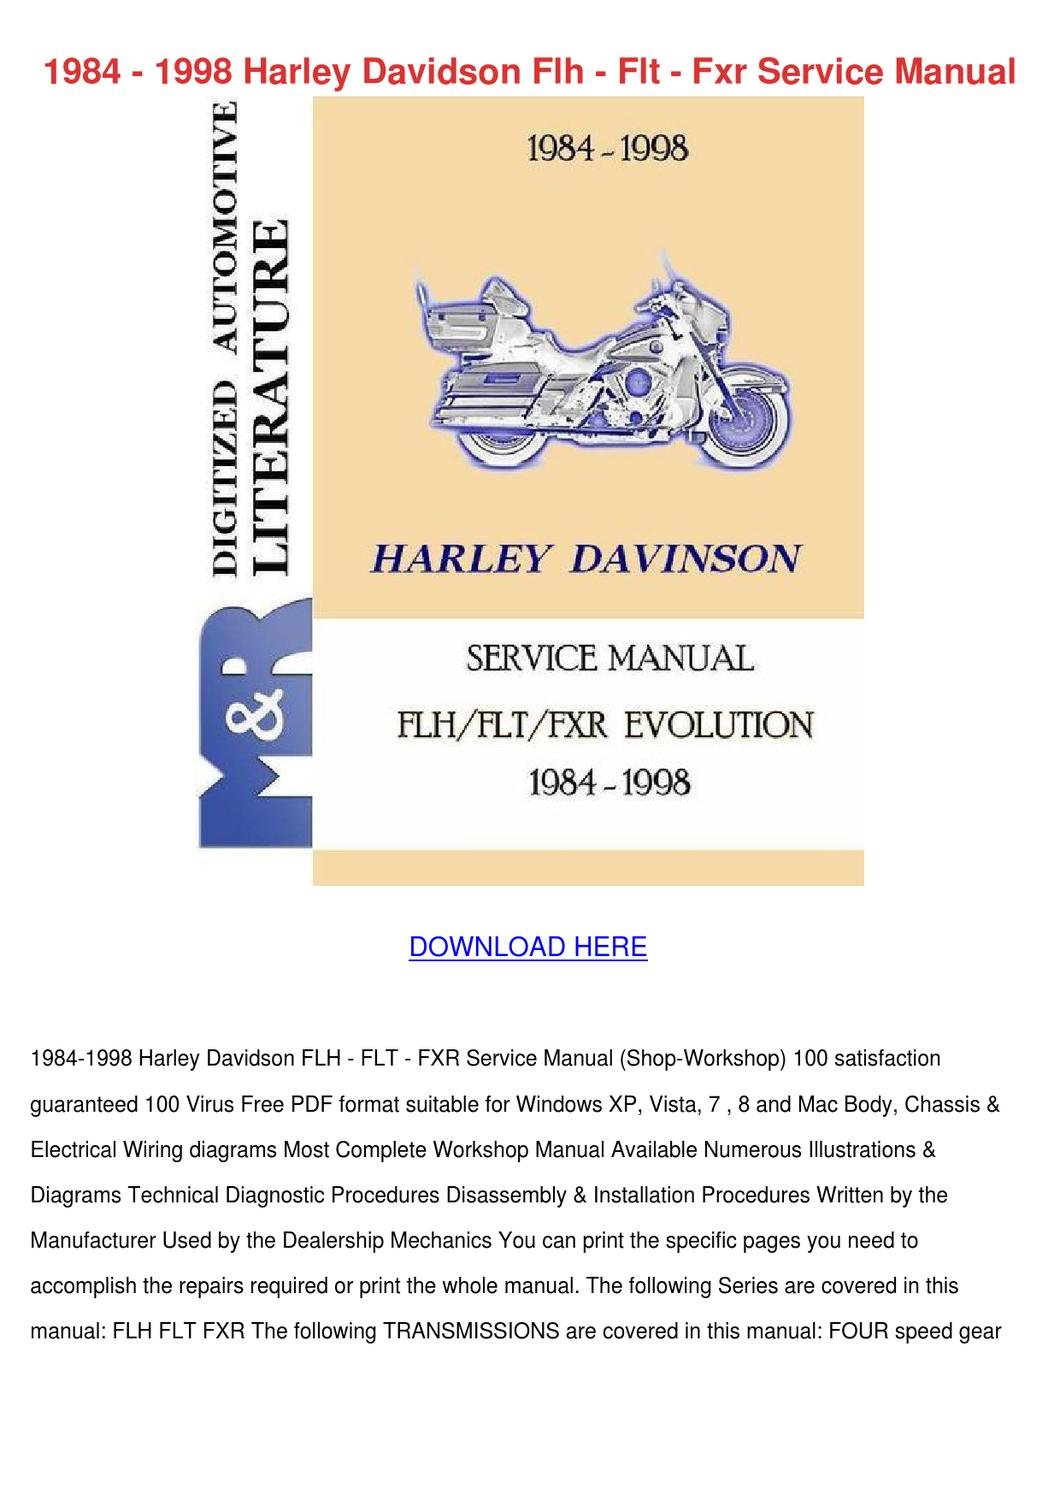 harley davidson wiring diagrams and schematics brain spinal cord diagram labeled